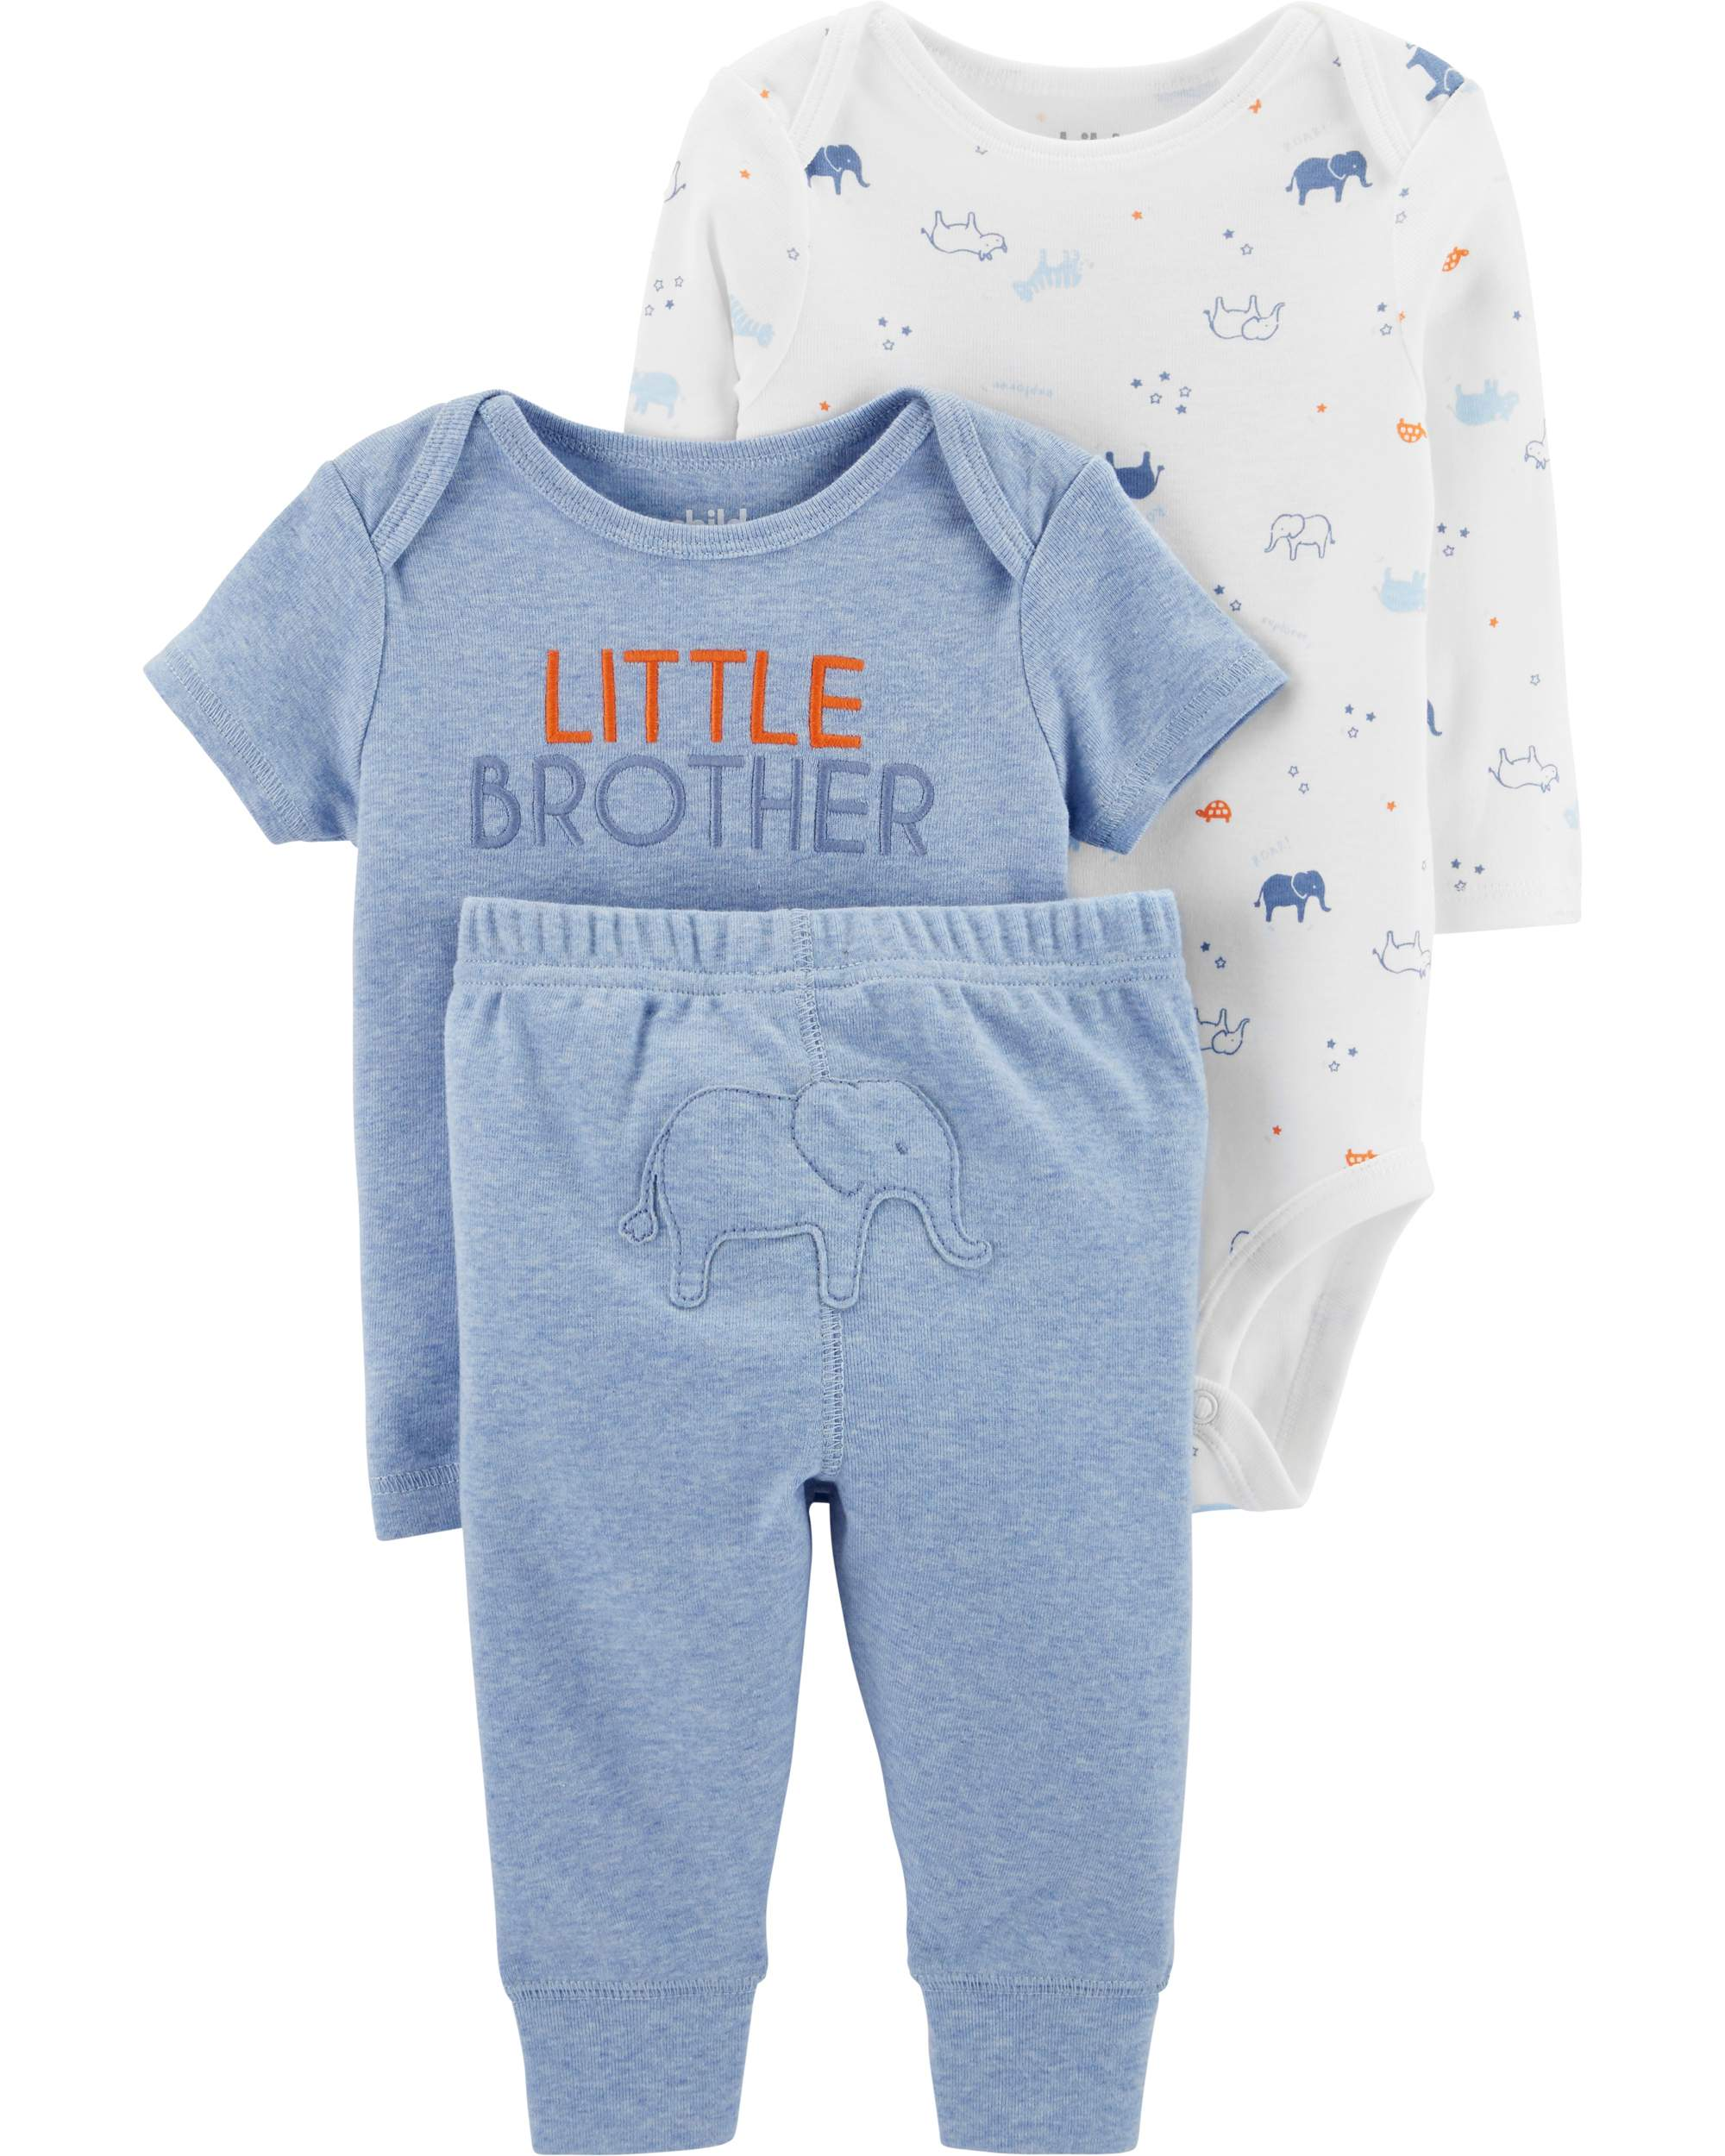 Carters Boys Outfit Pants Bodysuit Shirt 2 piece Set Baby Little Layette Wonders